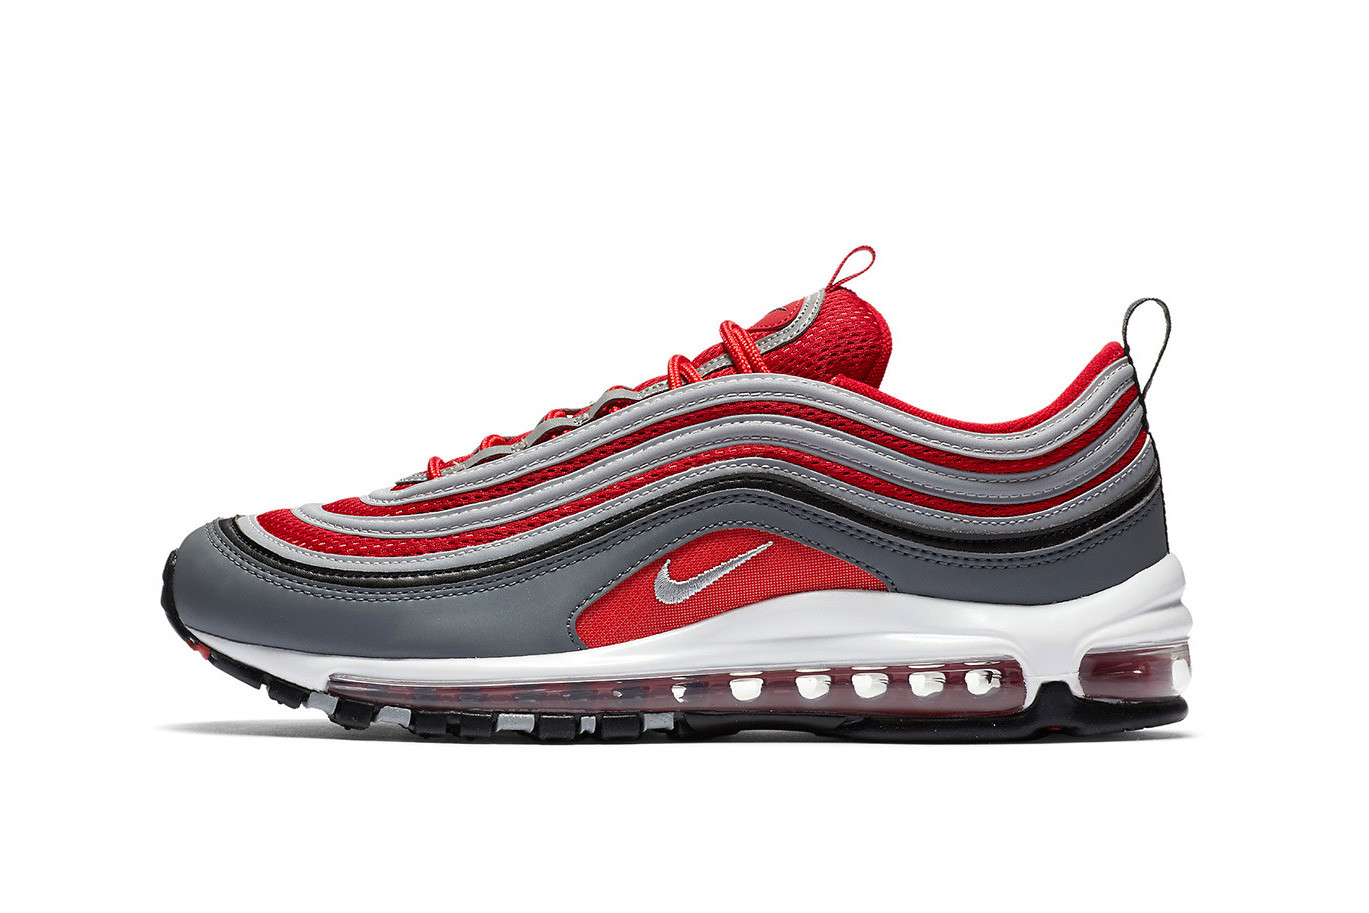 Nike Air Max 97 in Red/Grey/White/Black